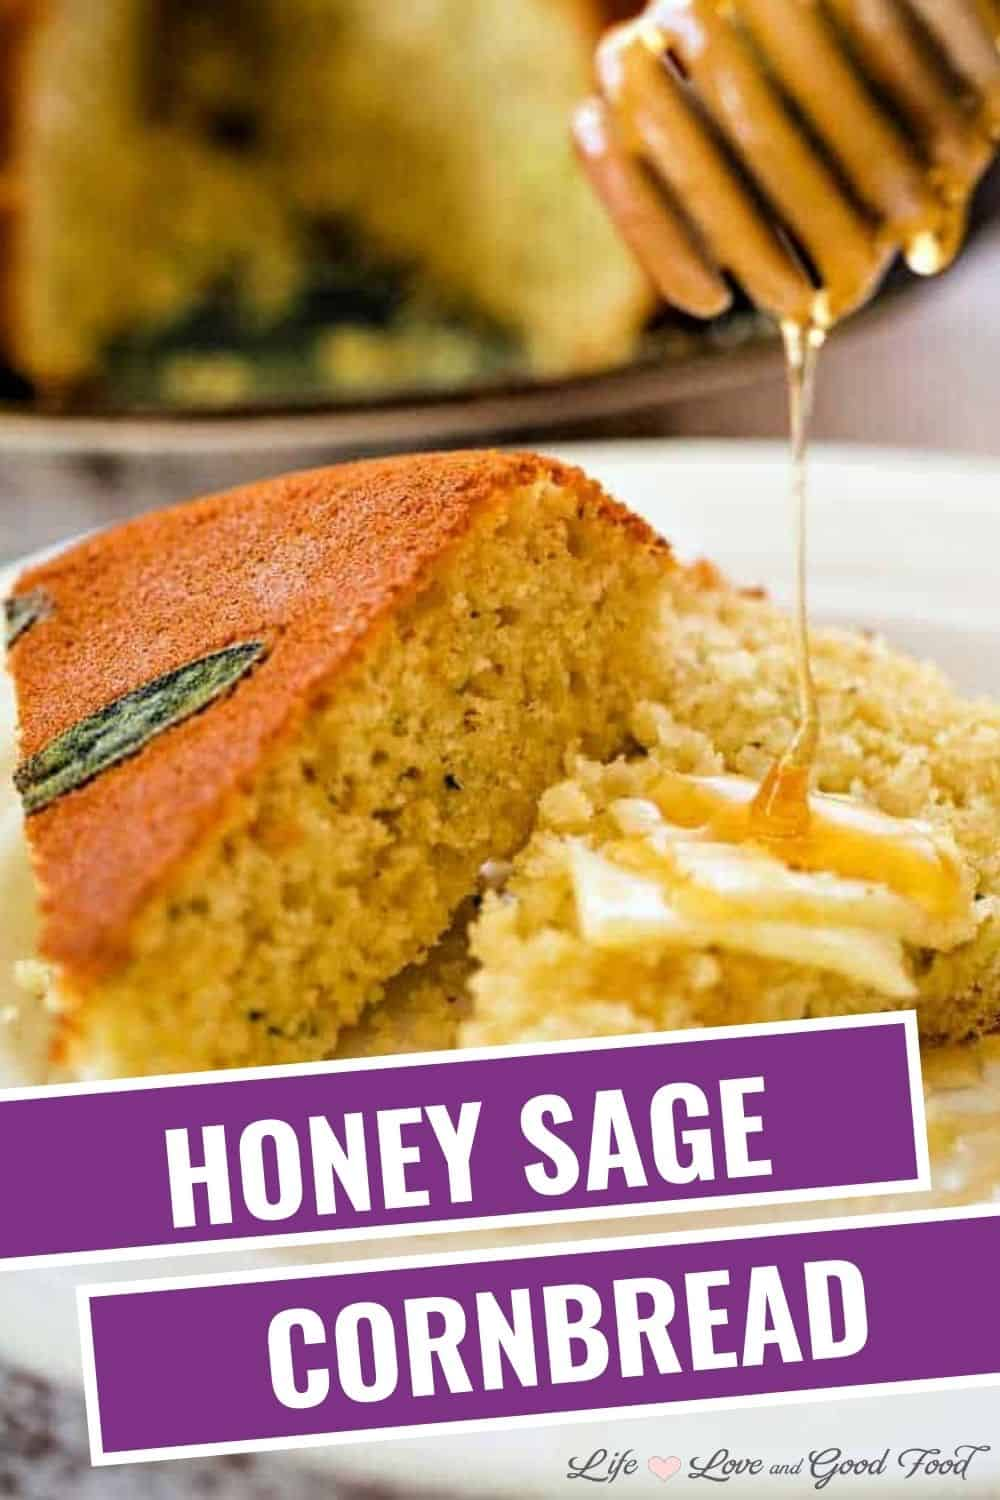 Honey Skillet Cornbread bakes in a hot cast iron skillet to get a beautiful golden crust speckled with whole sage leaves. Honey, more fresh sage, and a bit of minced green onion in the batter give this delicious Southern cornbread hints of both savory and sweet flavors making it extra special!